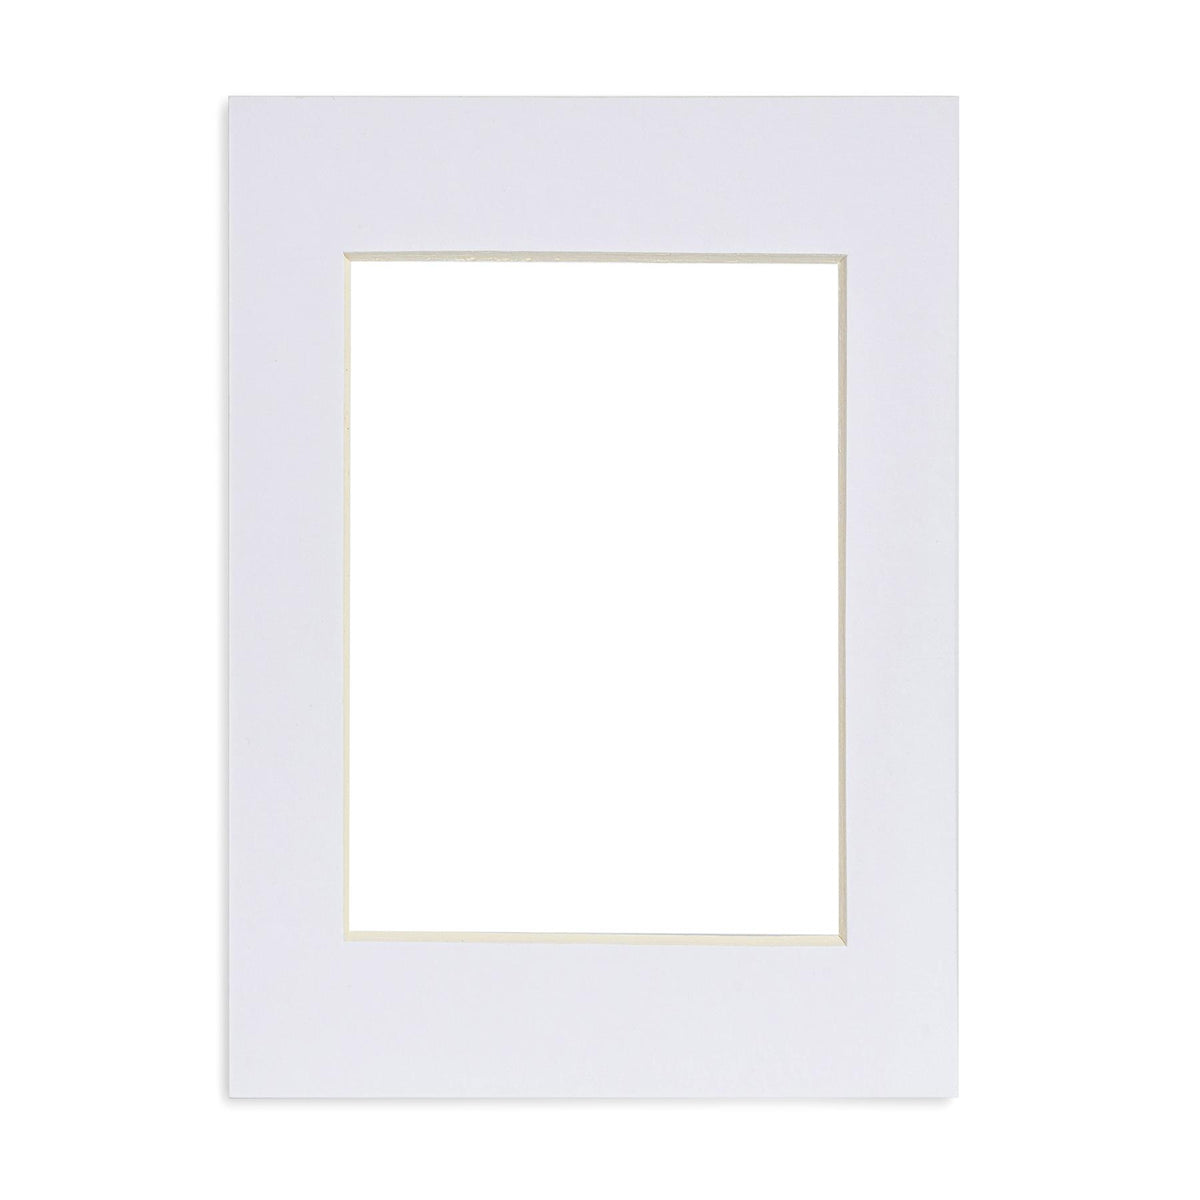 "Nicola Spring Picture Mount for 5 x 7"" Frame 